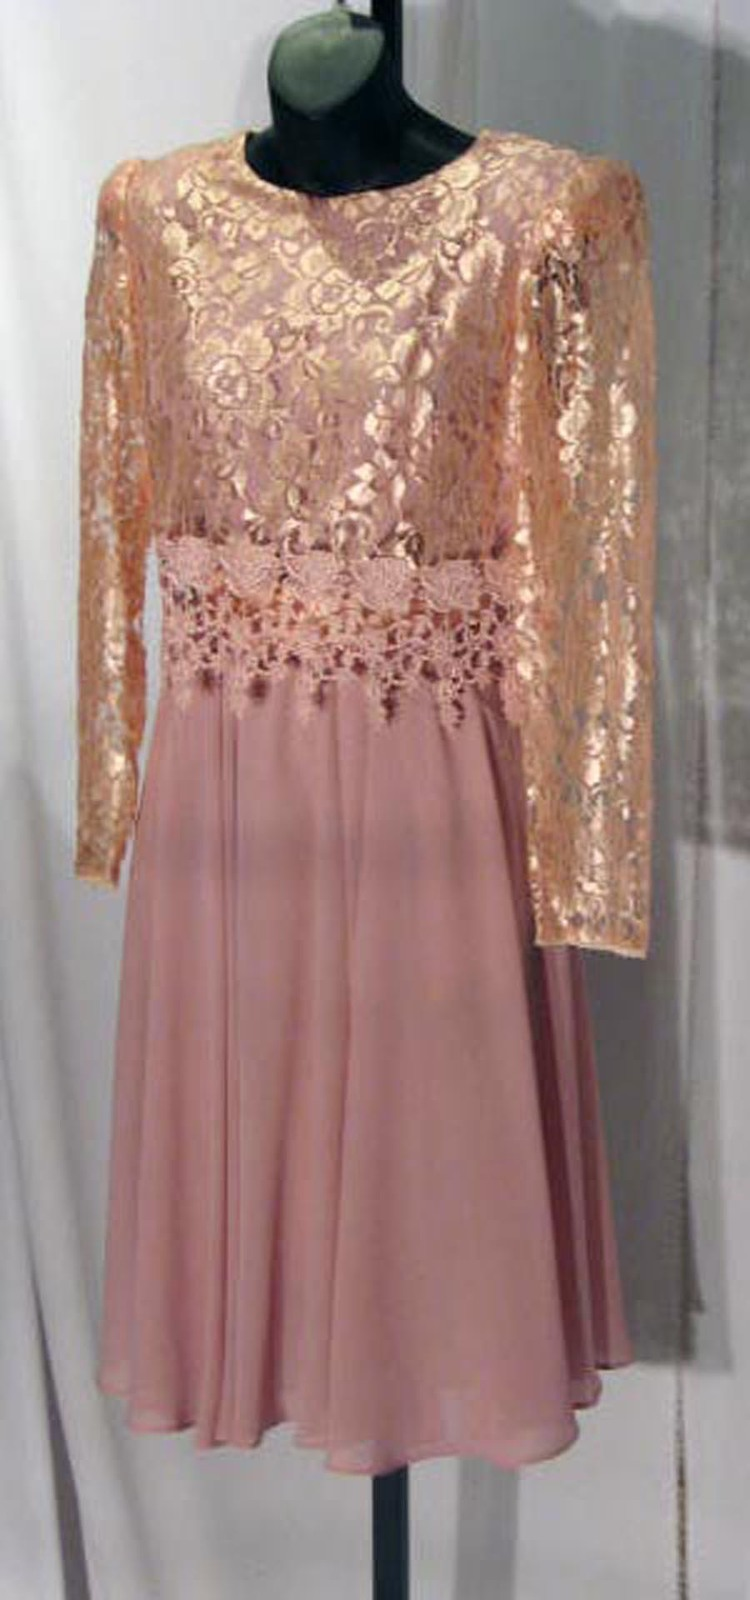 Marvinette VTG 100% Polyester Lace Top Dusty Pink Mid-Calf Cocktail Dress Sz: 6